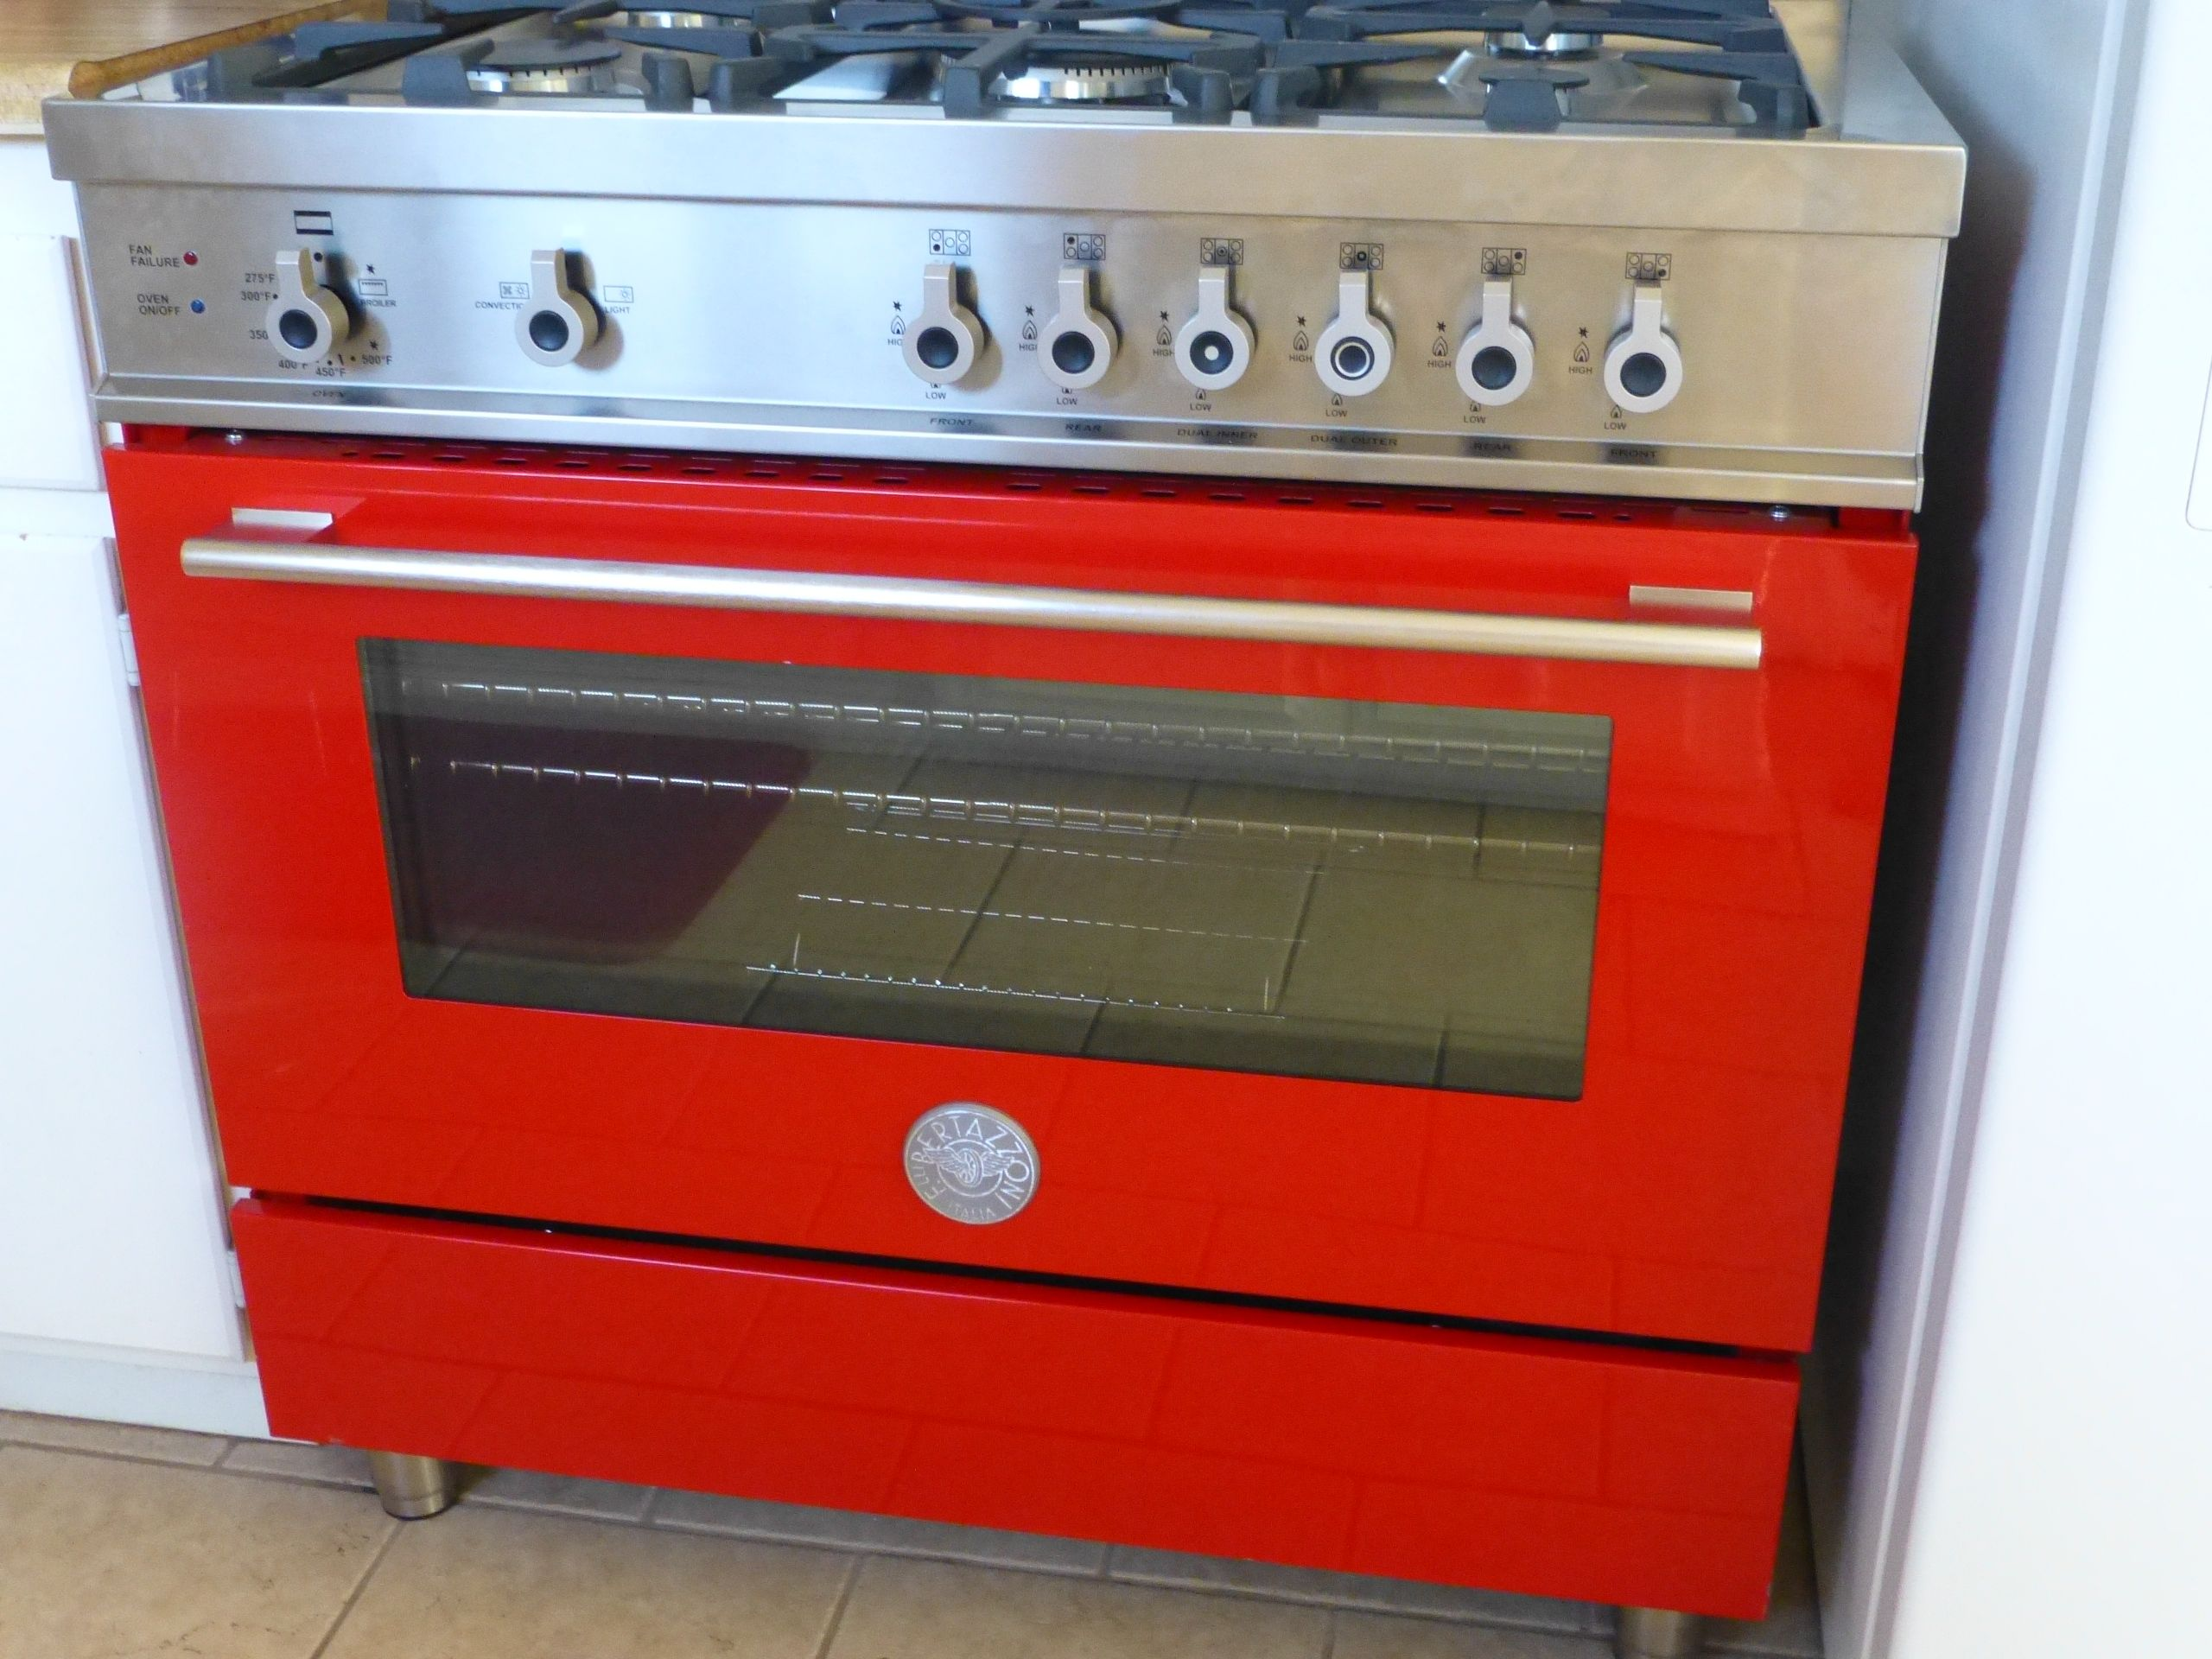 My Beautiful Red Stove